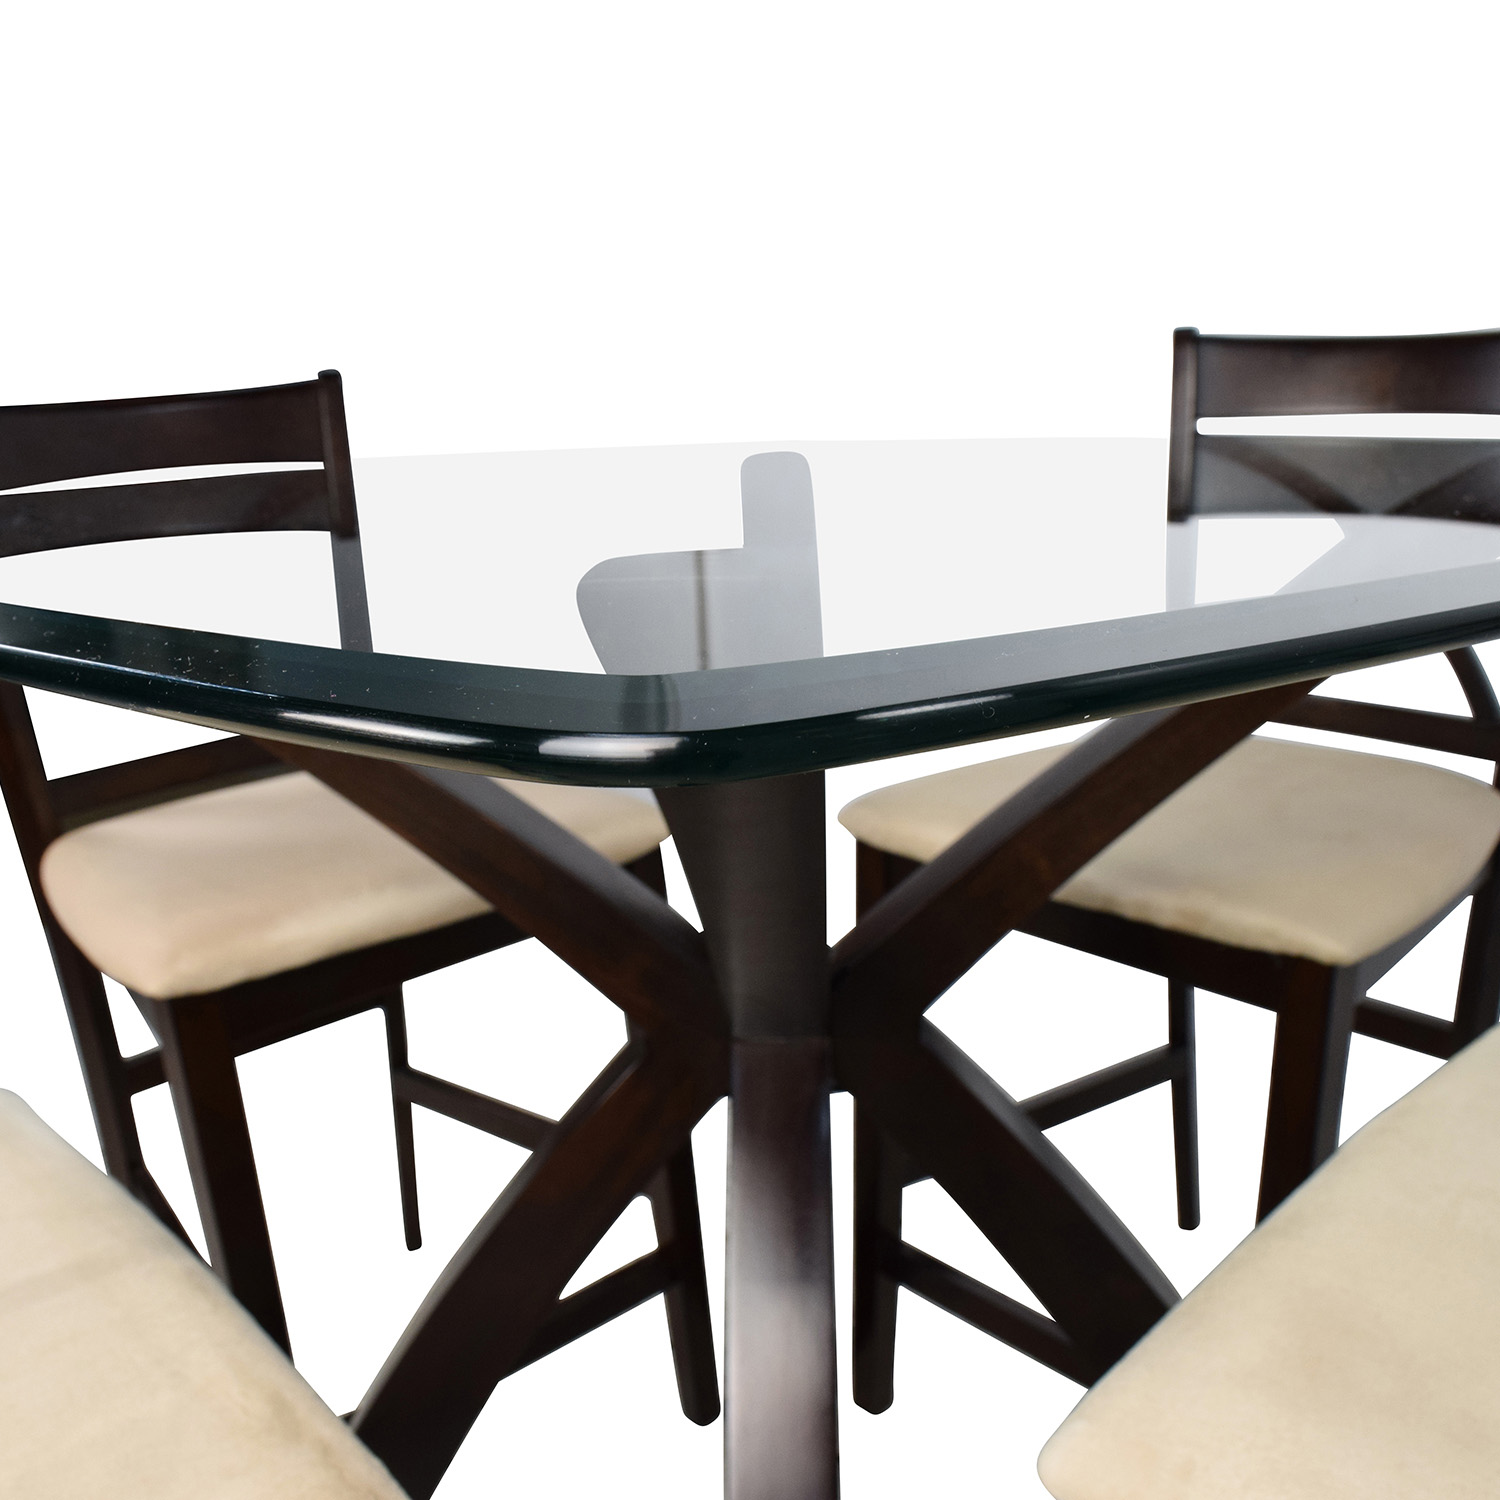 53 Off Counter Height Glass And Wood Table With Four